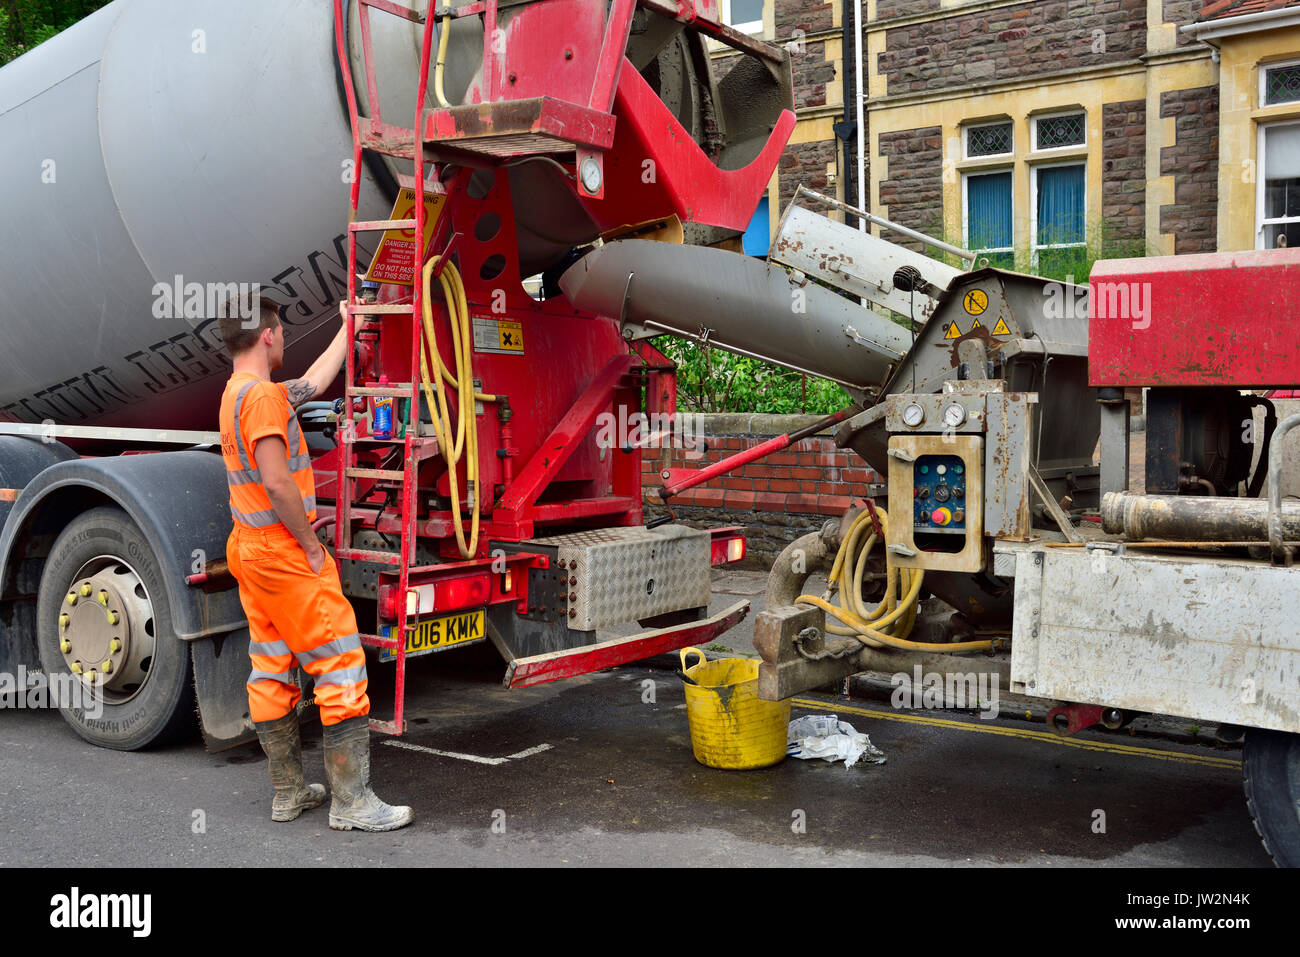 Cement Mixer Truck Stock Photos Amp Cement Mixer Truck Stock